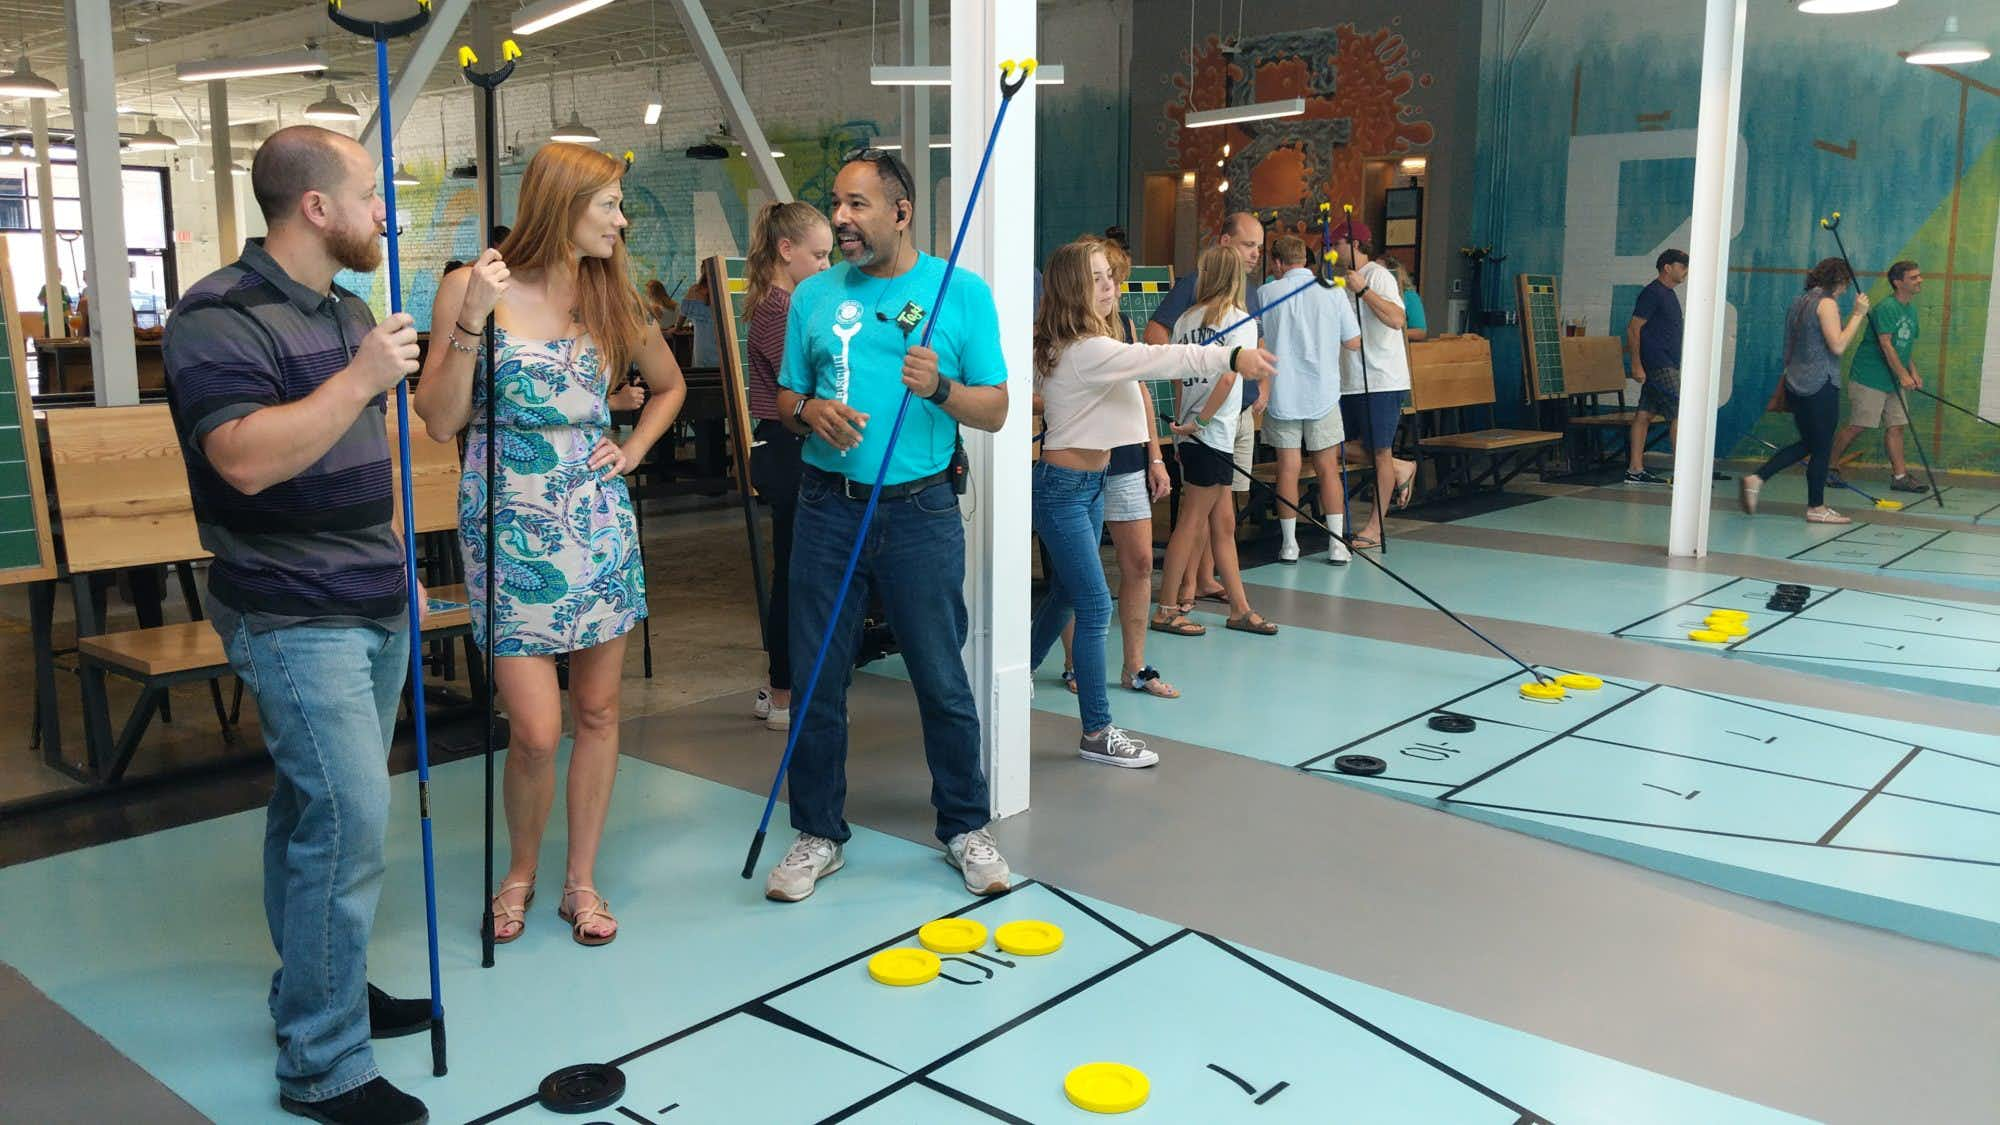 """<p><span style=""""font-size: 1em; background-color: transparent;"""">Tang & Biscuit, a huge shuffleboard club named for terms for the sport's stick and puck, opened in August in Richmond, Va.</span></p>(Courtesy/Tang & Biscuit)"""